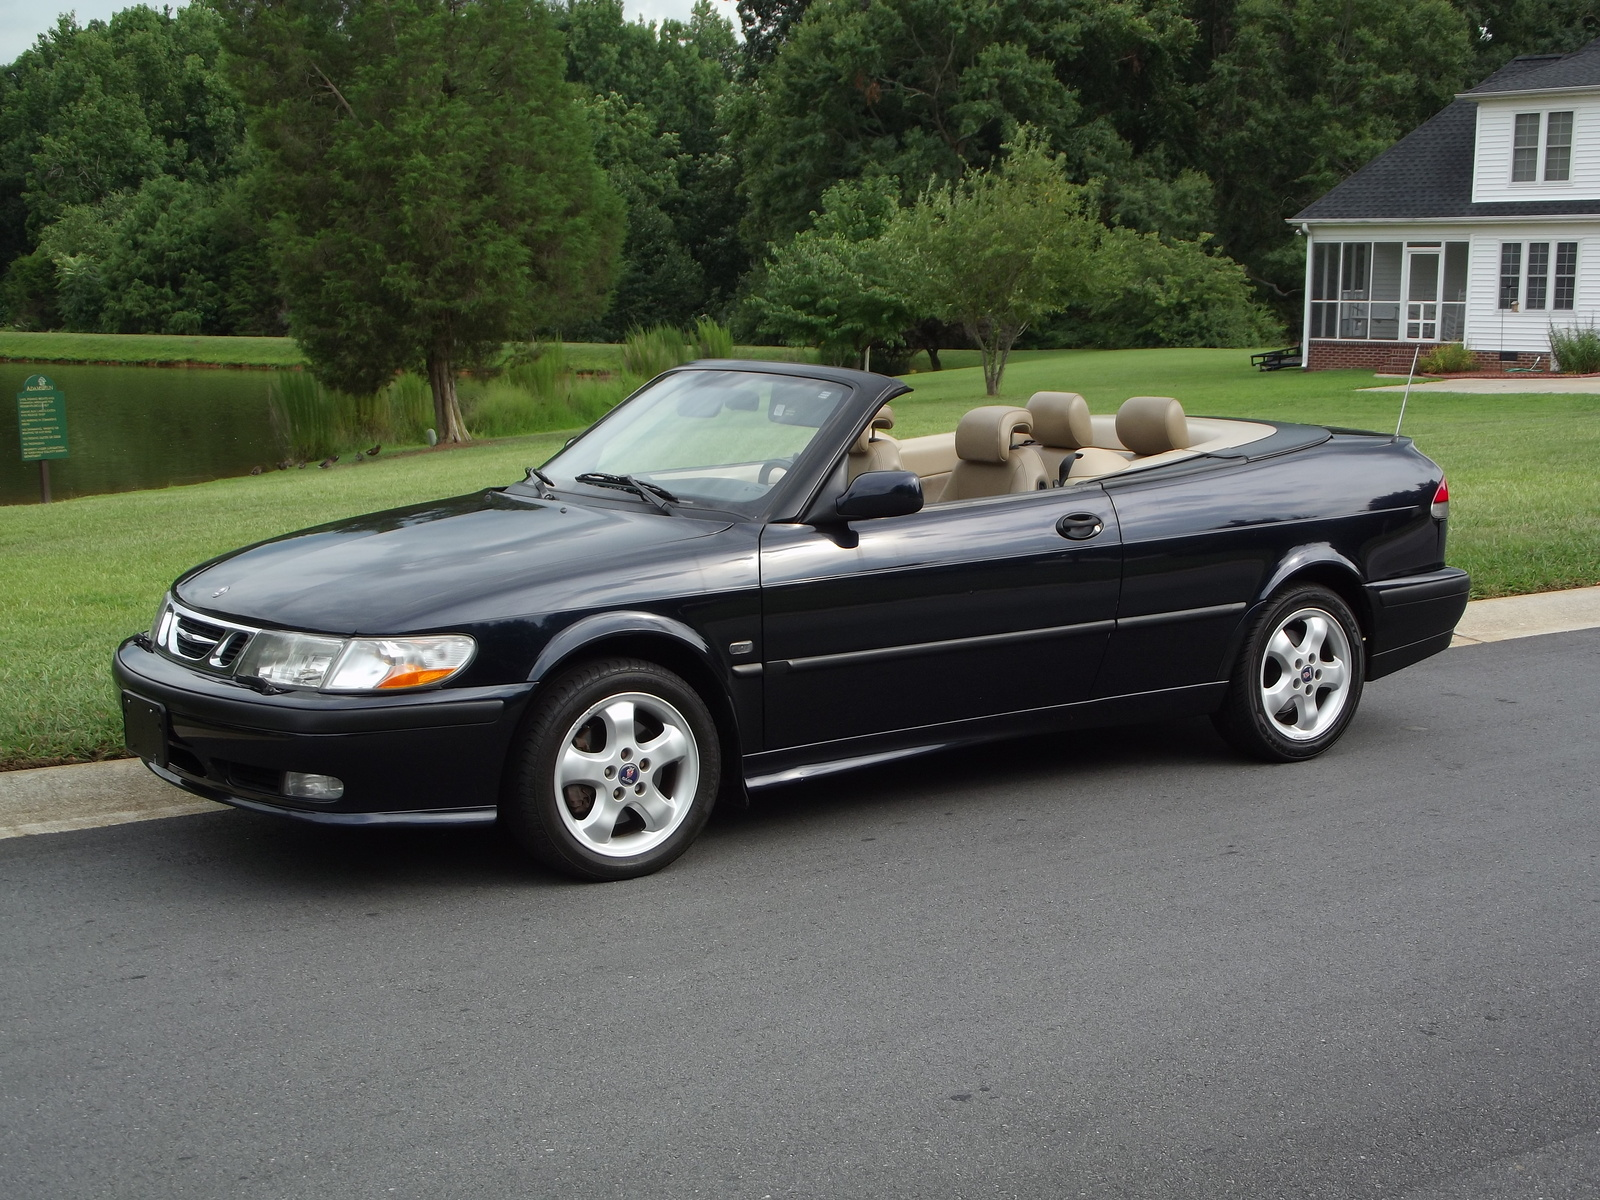 2001 saab 9 3 convertible pictures to pin on pinterest thepinsta. Black Bedroom Furniture Sets. Home Design Ideas